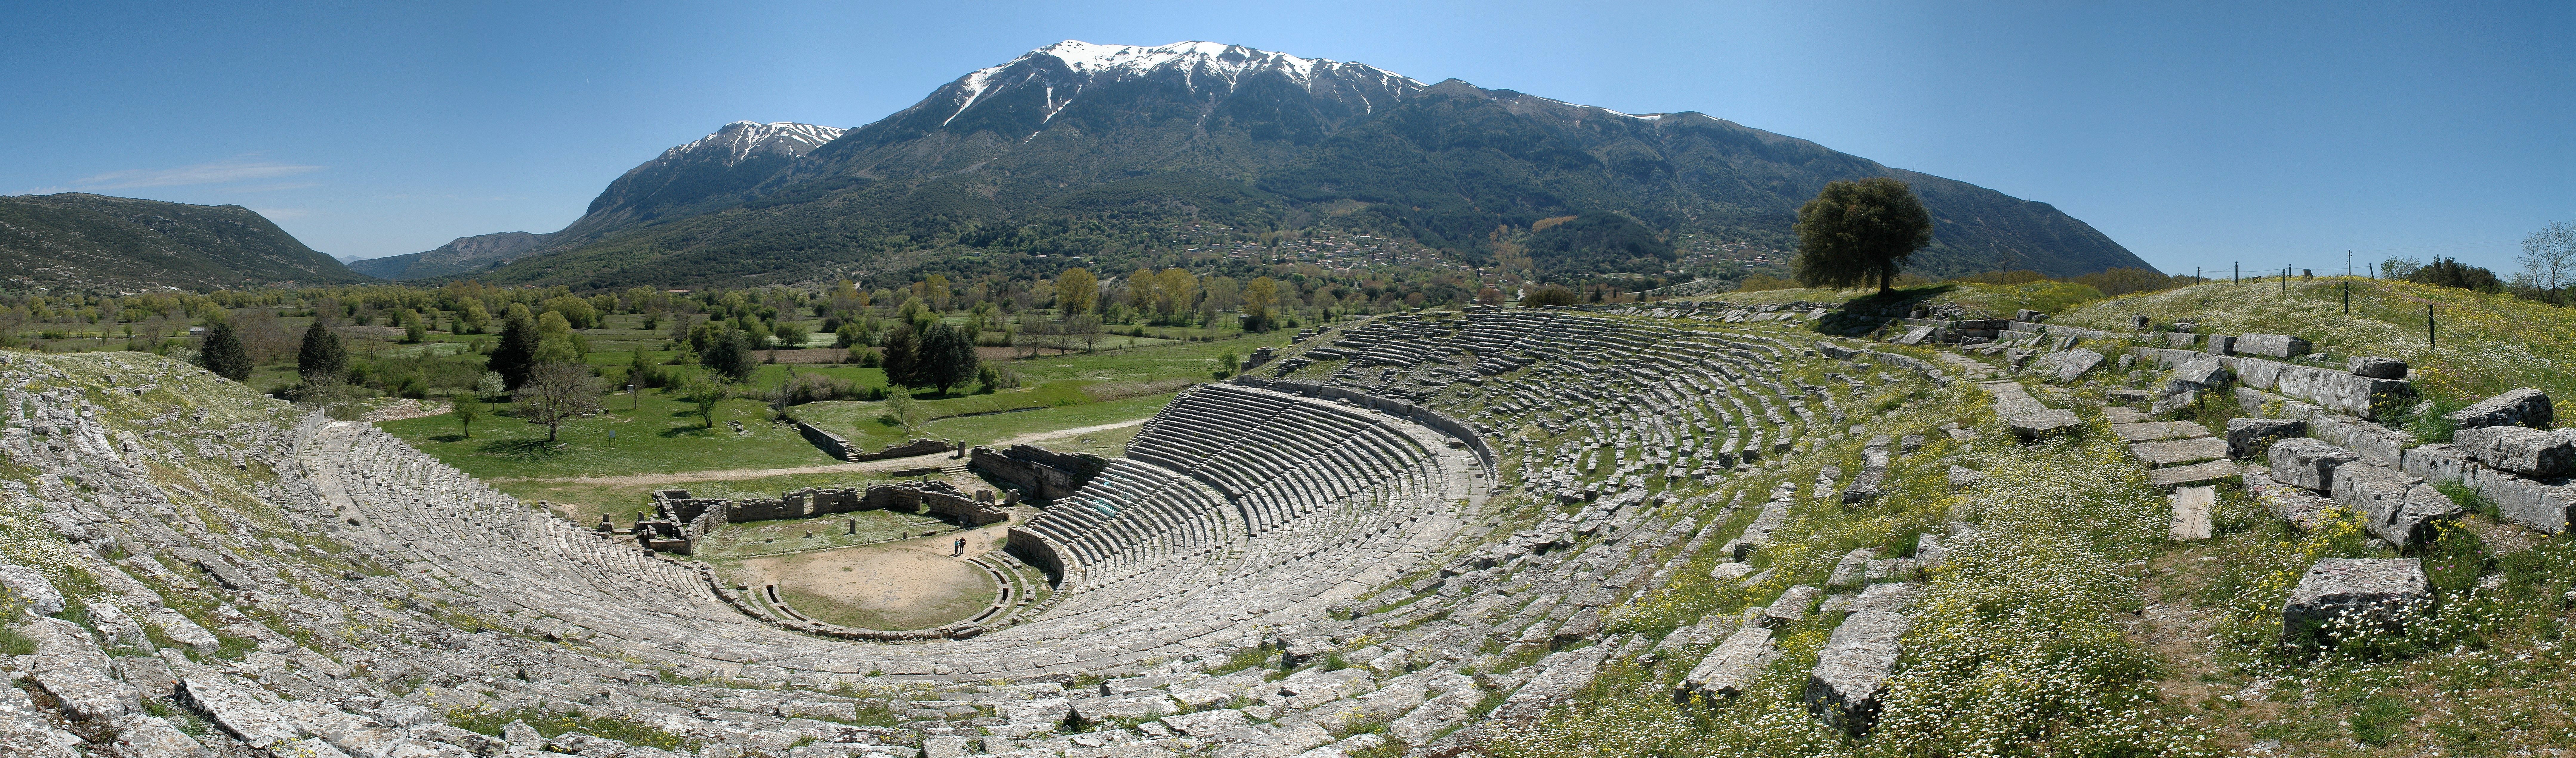 The ancient theater of Dodona, Epirus, Greece.  Photo on Wikimedia Commons by Onno Zweers